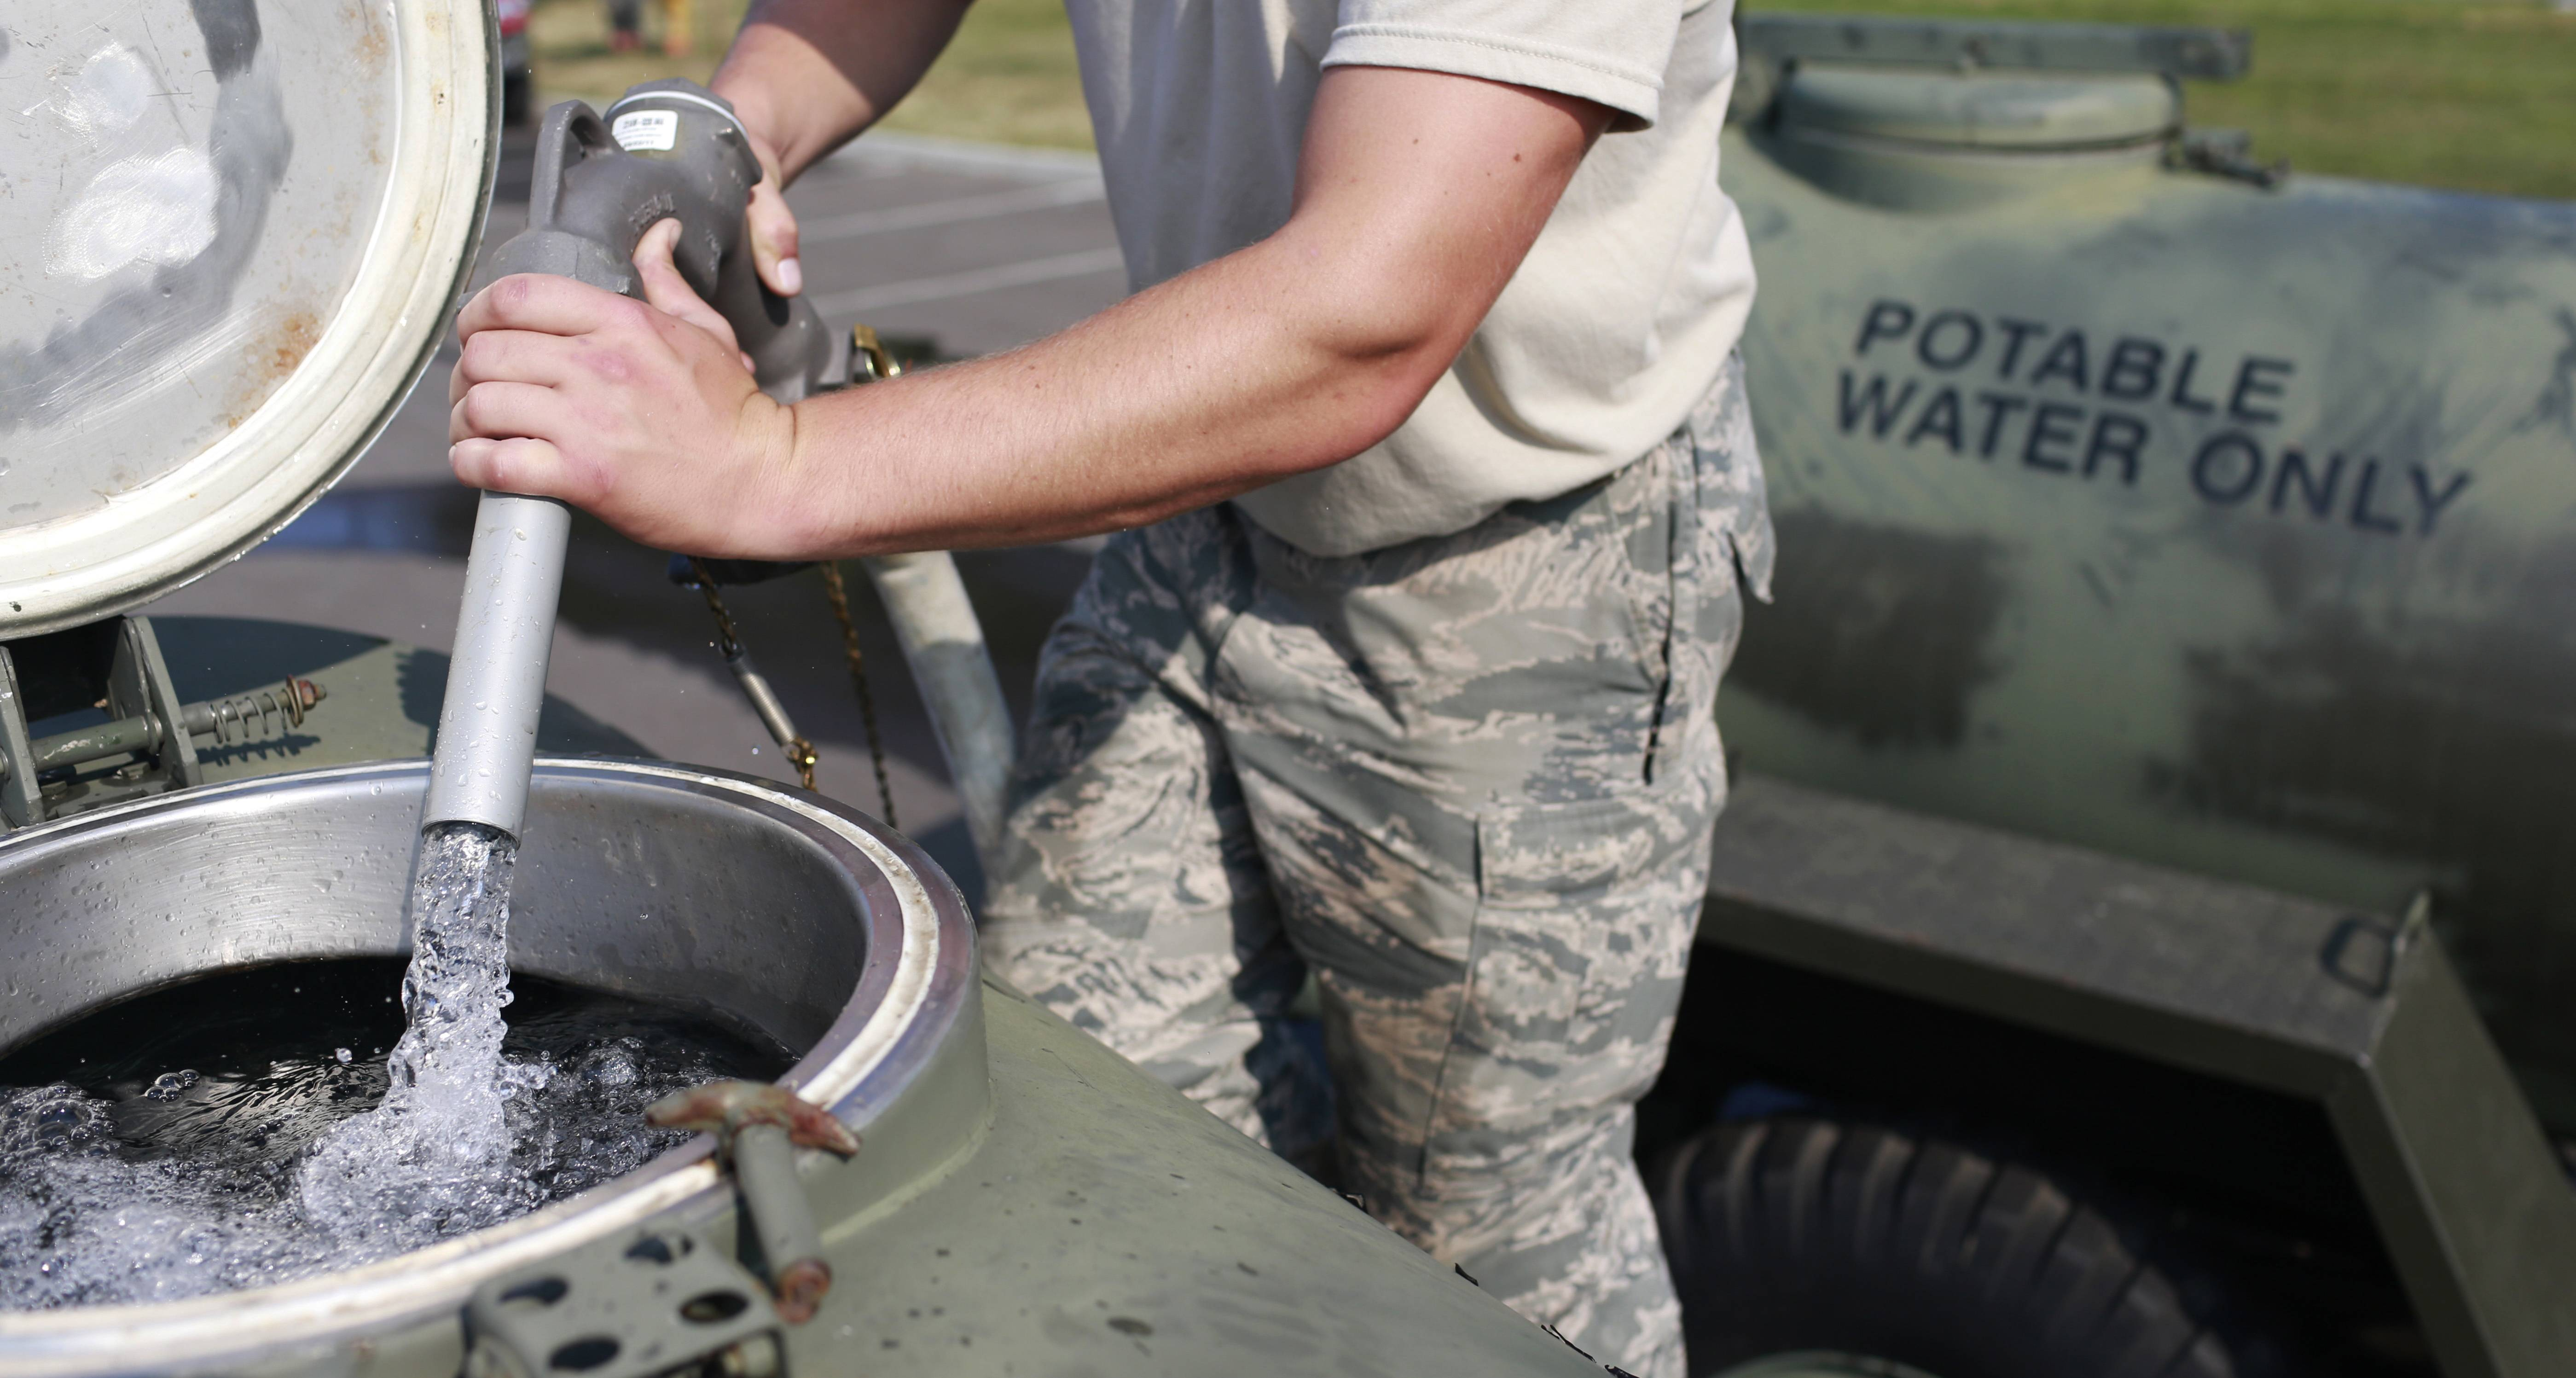 Ohio Air National Guard Senior Airman Nick Wander fills a 400 gallon military water buffalo with fresh drinking water at Woodward High School in Toledo, Ohio., Aug. 3. Environmentalists, scientists and farmers agree that agriculture runoff is feeding the blue-green algae blooms on Lake Erie that are linked to the toxins found in the drinking water of 400,000 people last weekend.